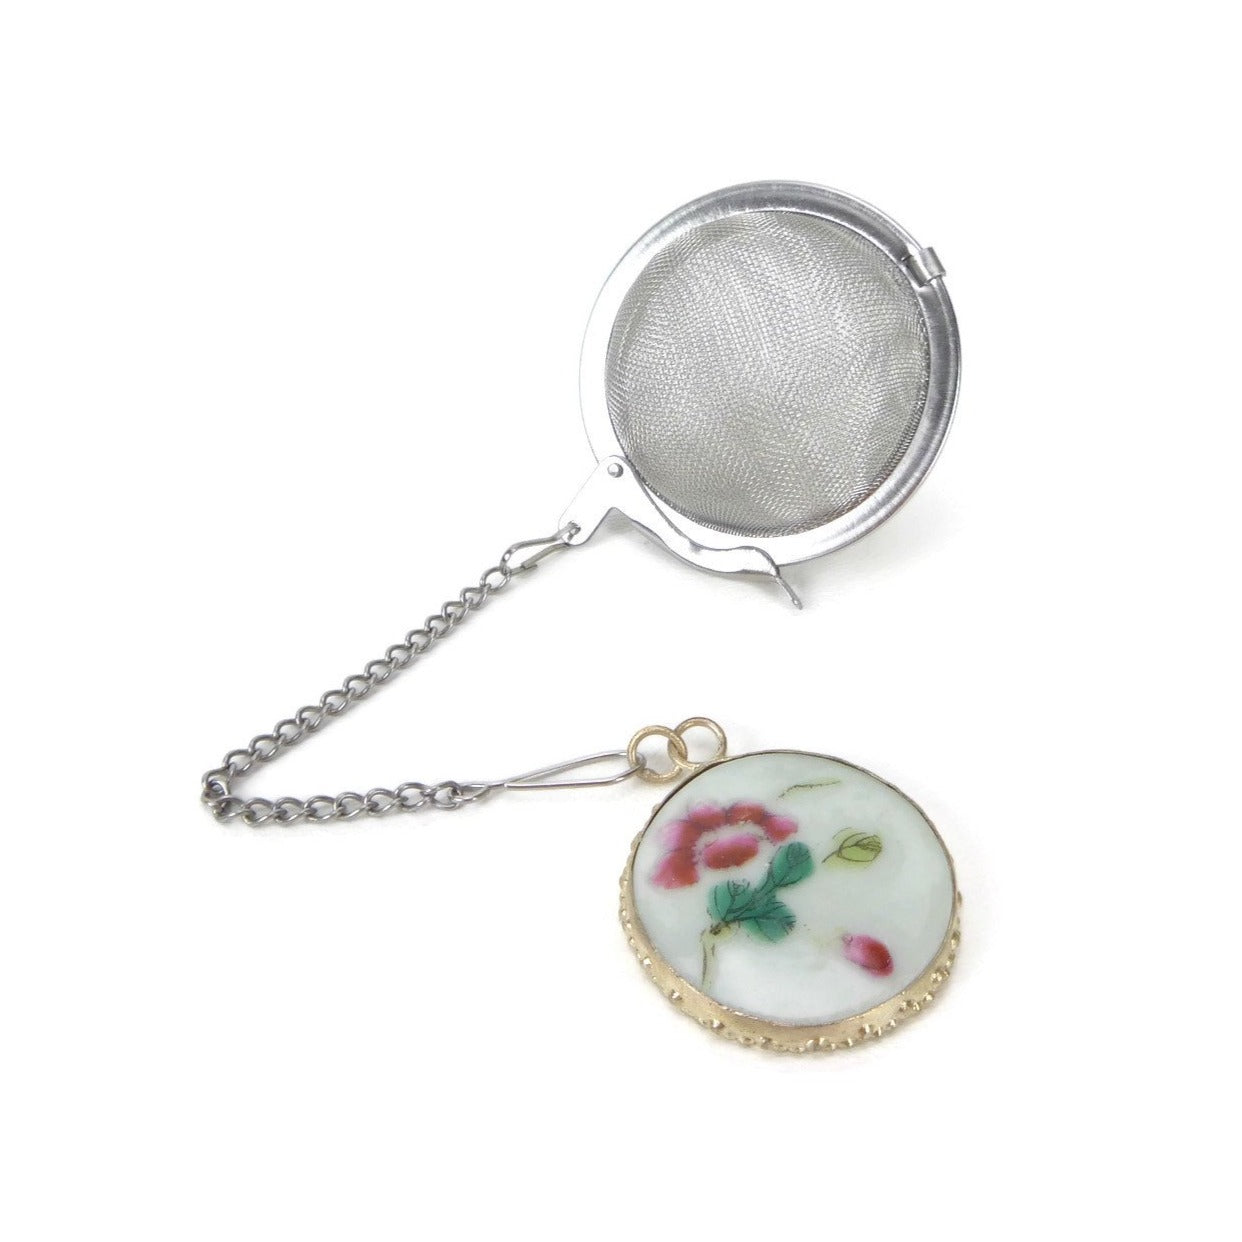 Tea Infuser with Antique Pottery Shard Charm